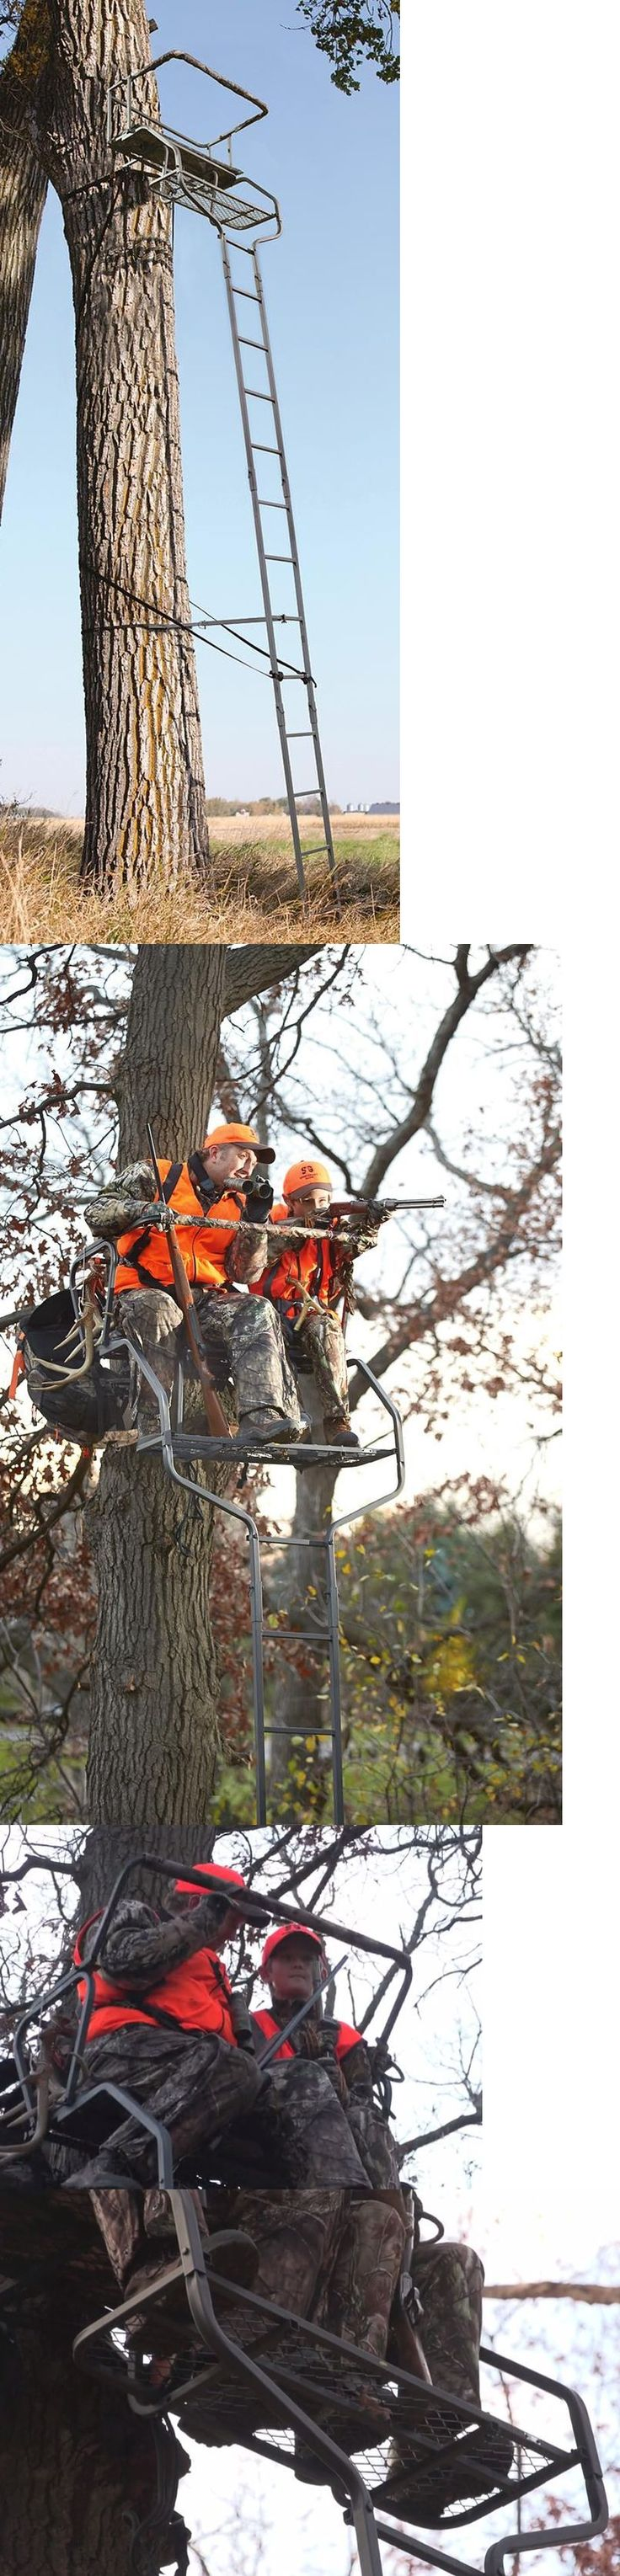 Tree Stands 52508: 18 2-Man Ladder Tree Stand Deer Hunting Platform Cross Bow Archery Rifle New -> BUY IT NOW ONLY: $147.95 on eBay!